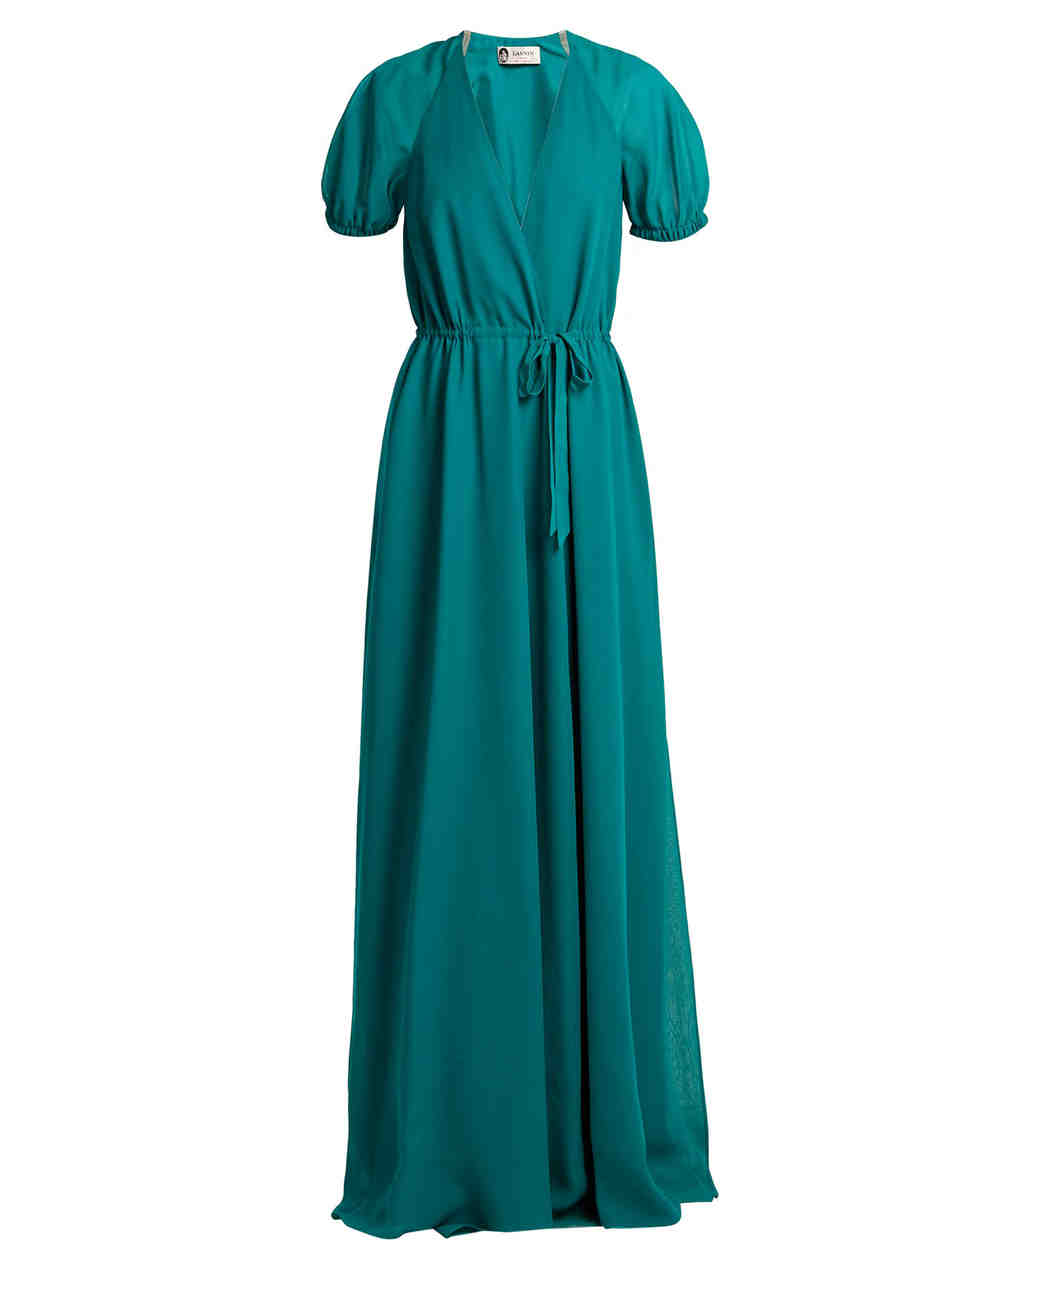 Dorable Saks Fifth Avenue Mother Of The Bride Dresses Frieze ...